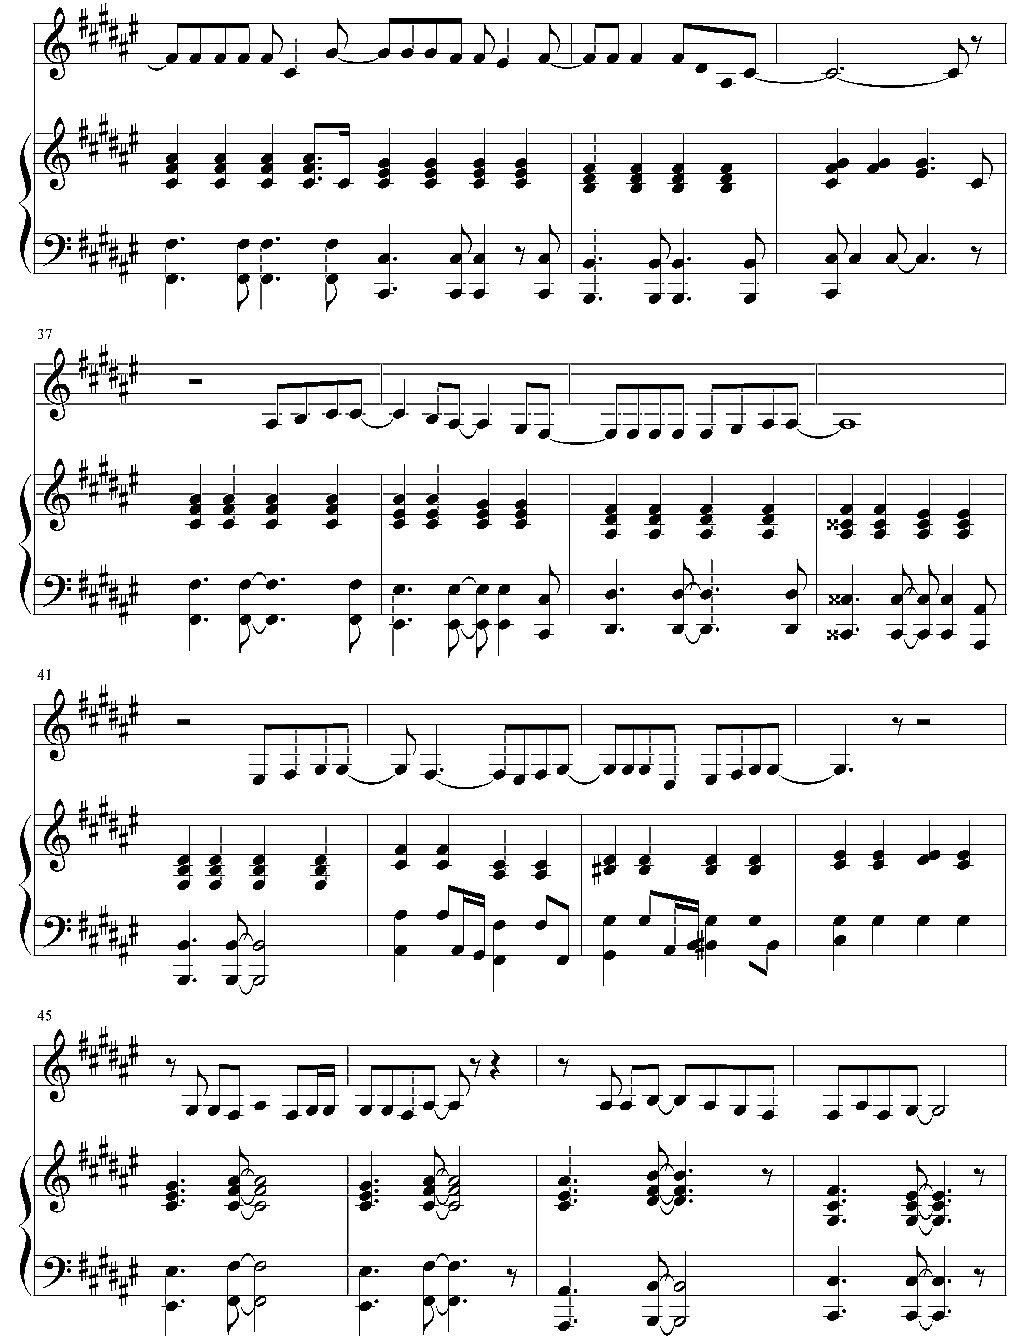 25 minutes3 piano sheet music